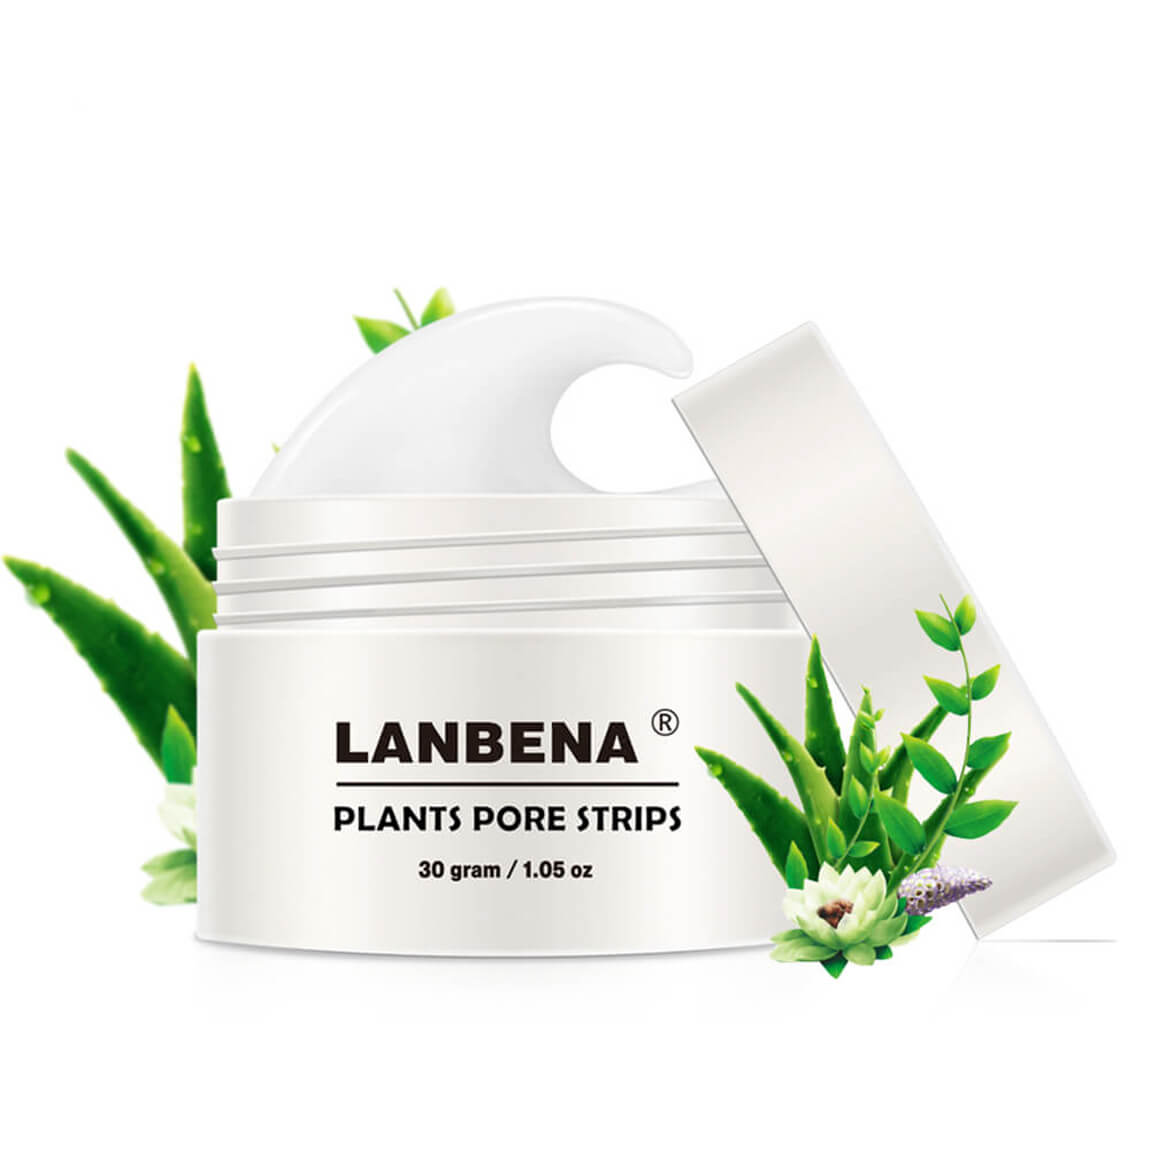 Lanbena nose cream